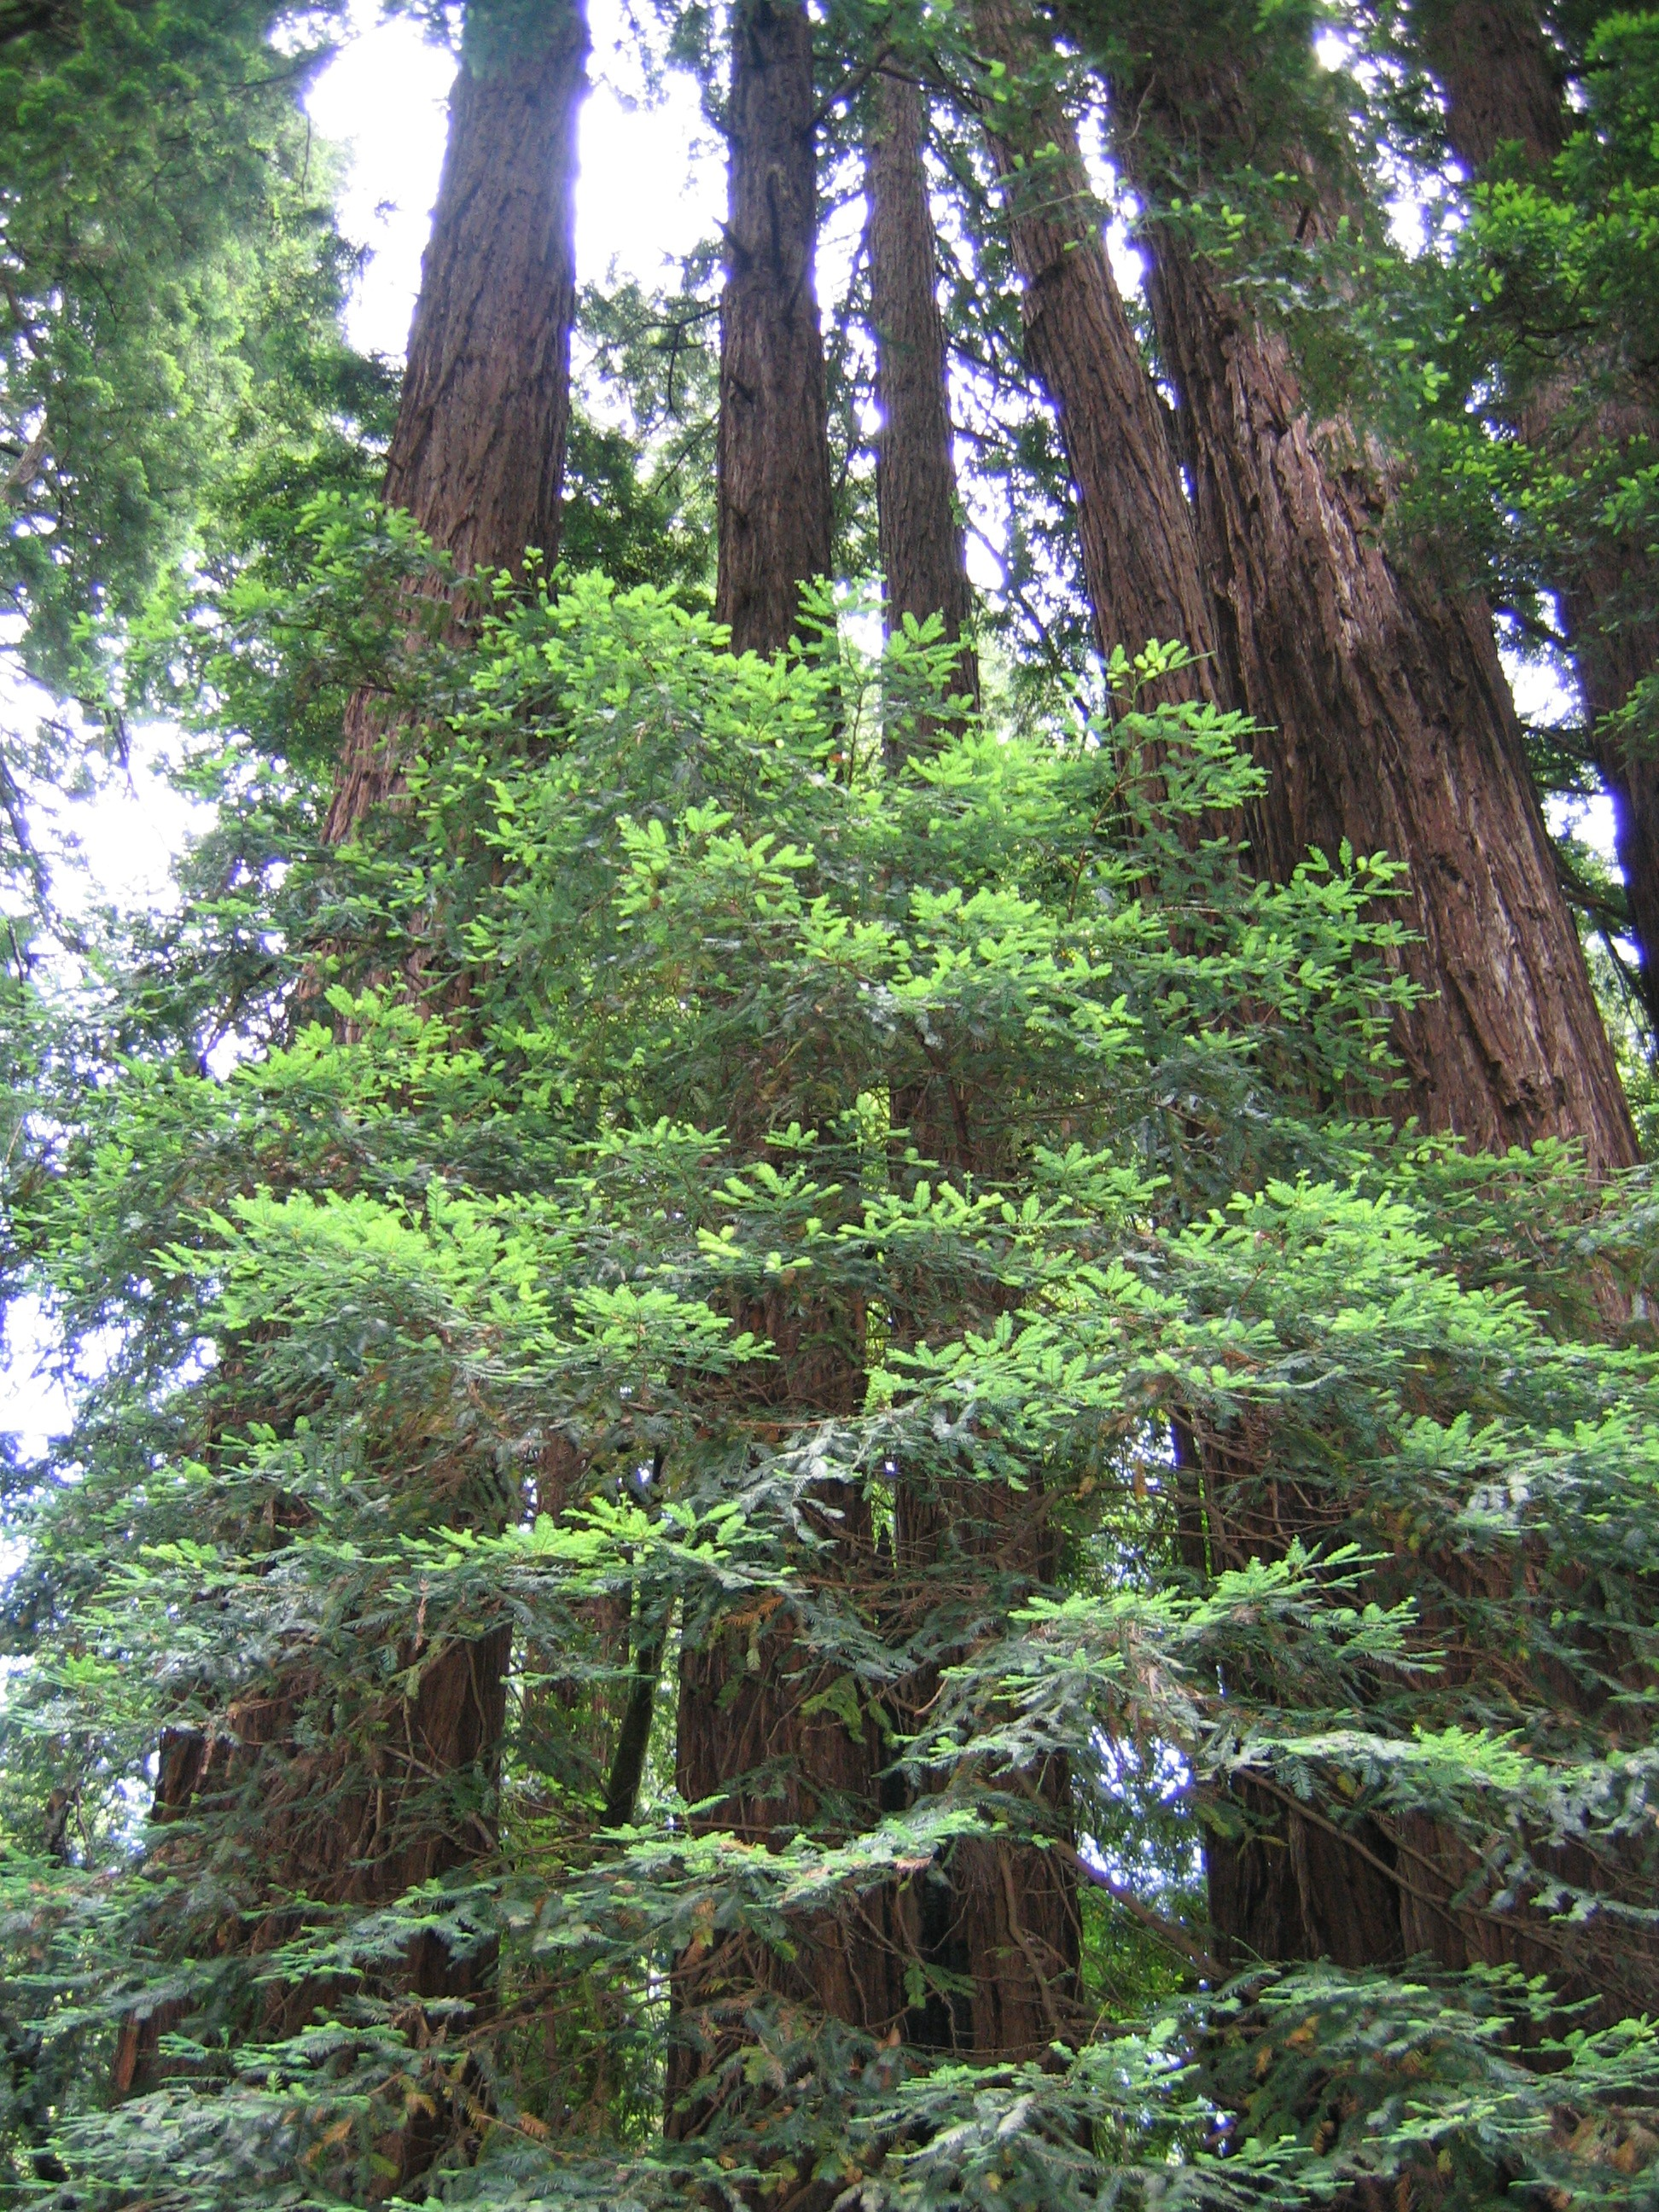 http://upload.wikimedia.org/wikipedia/commons/0/04/Family_ring_of_redwoods.jpg